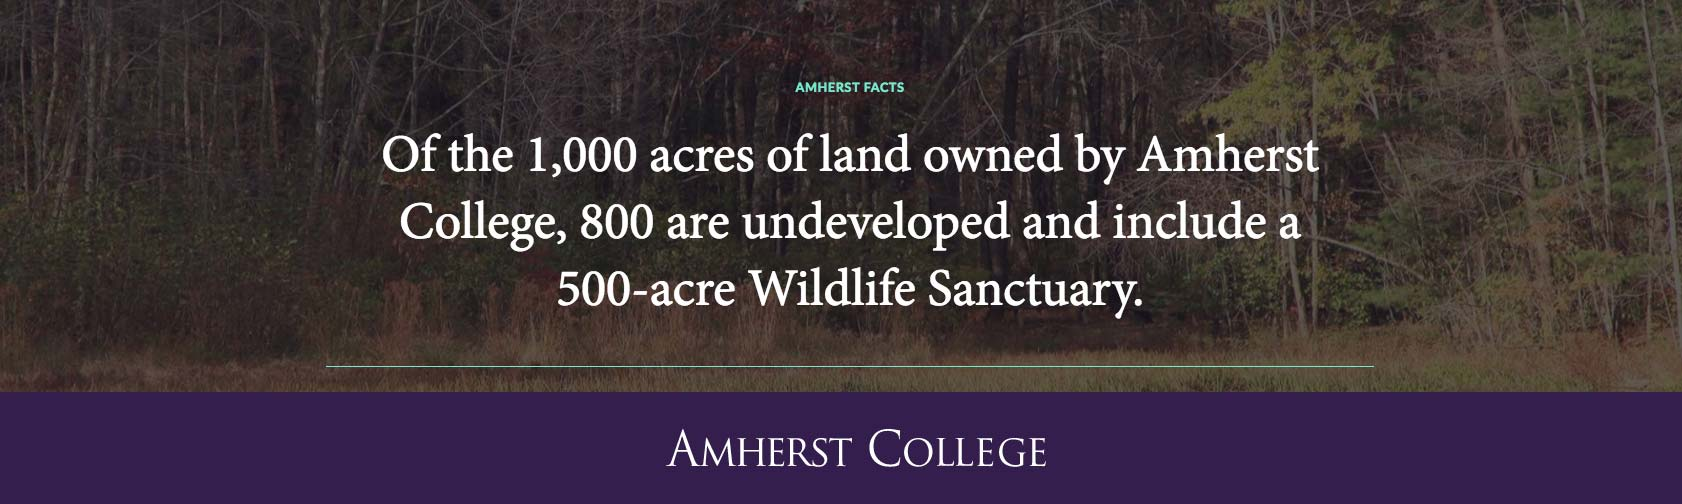 Wildlife Sanctuary Fact